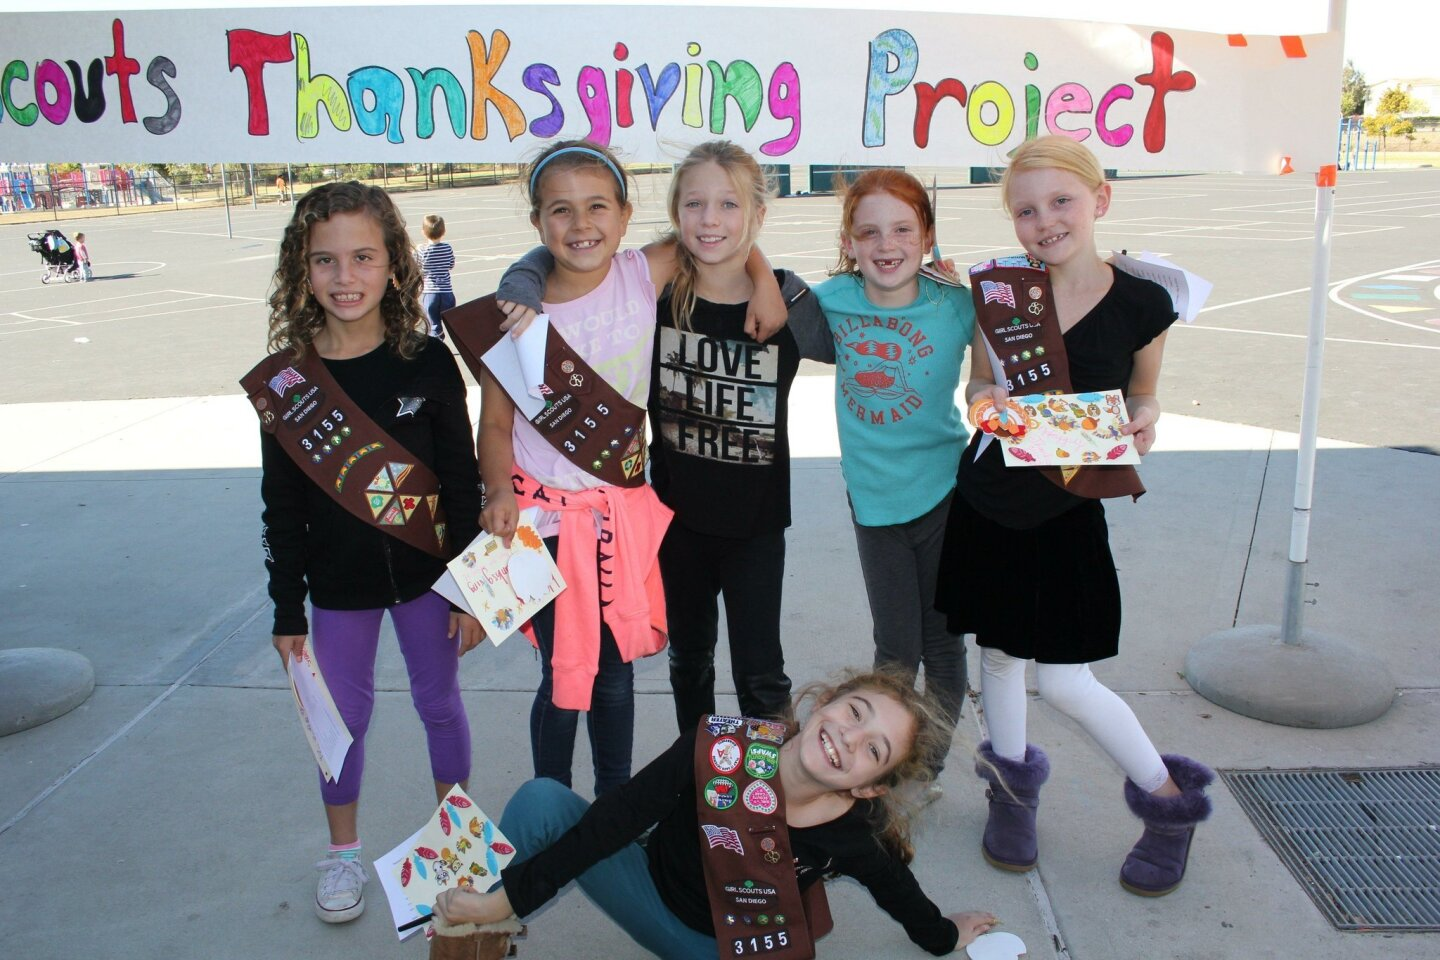 The Sage Canyon Girl Scouts Thanksgiving Project packed up 125 bags for families in need.